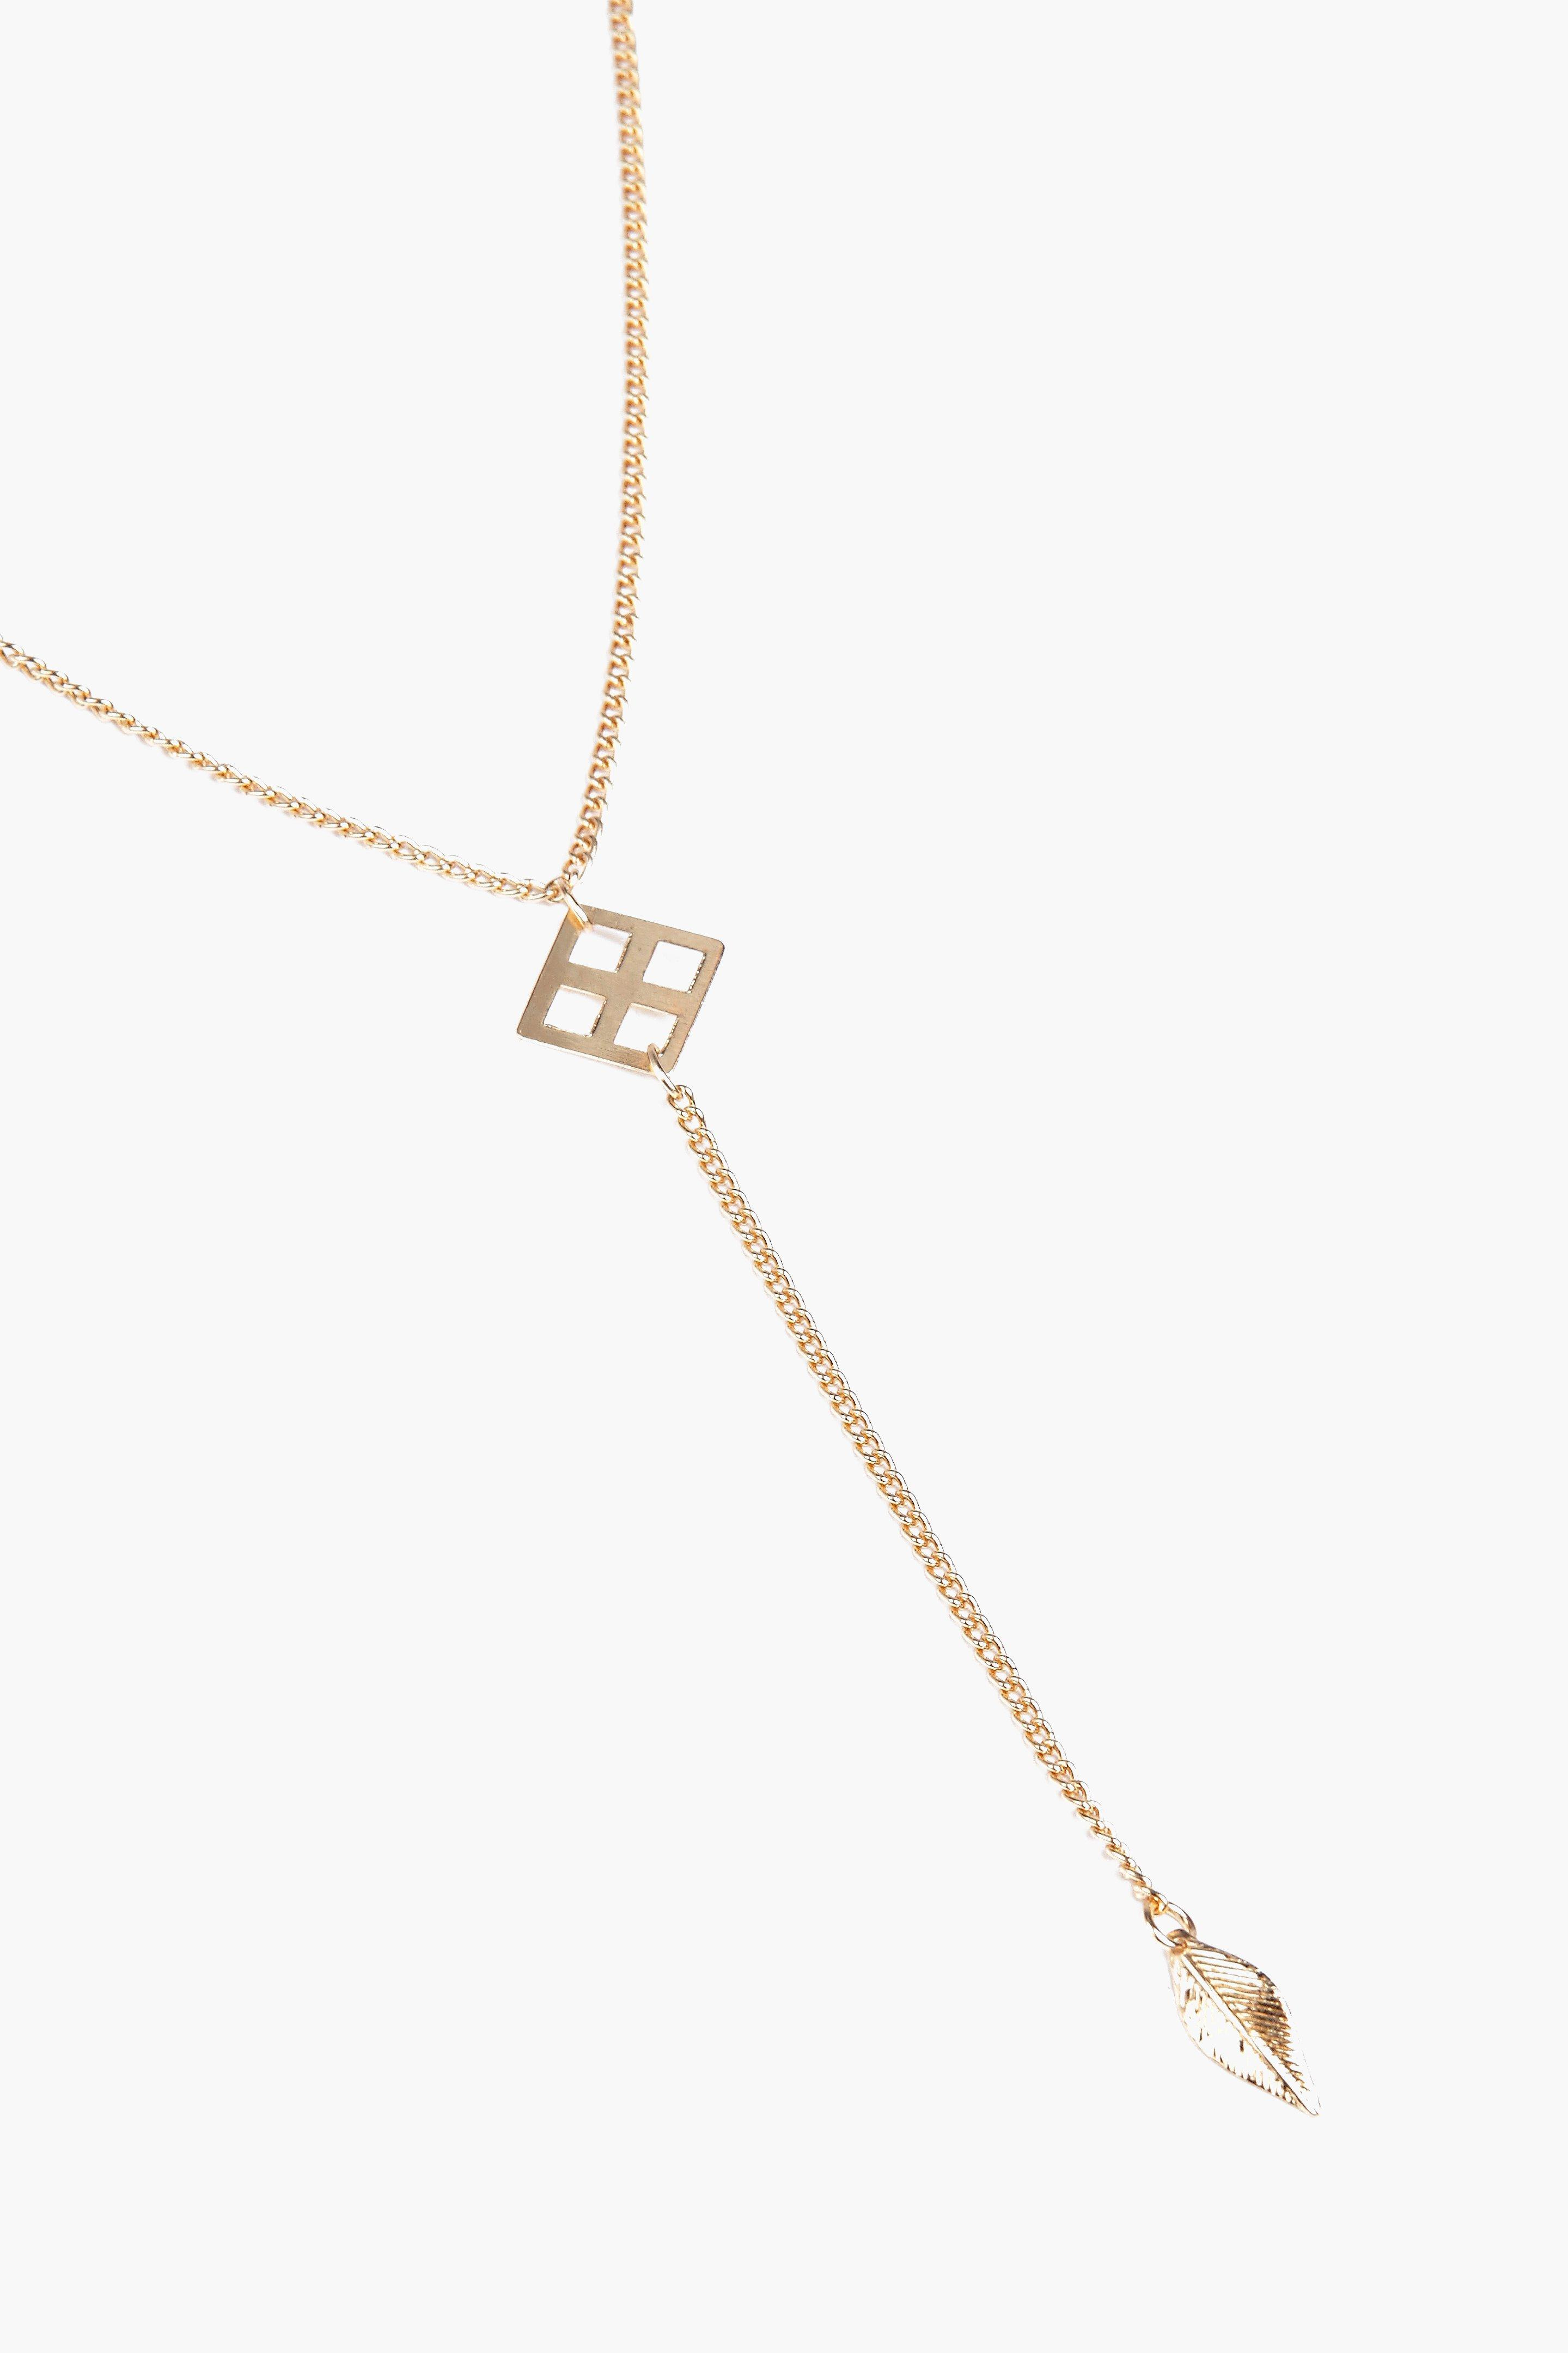 Boohoo Hannah Leaf Detail Plunge Necklace in Gold (Metallic)